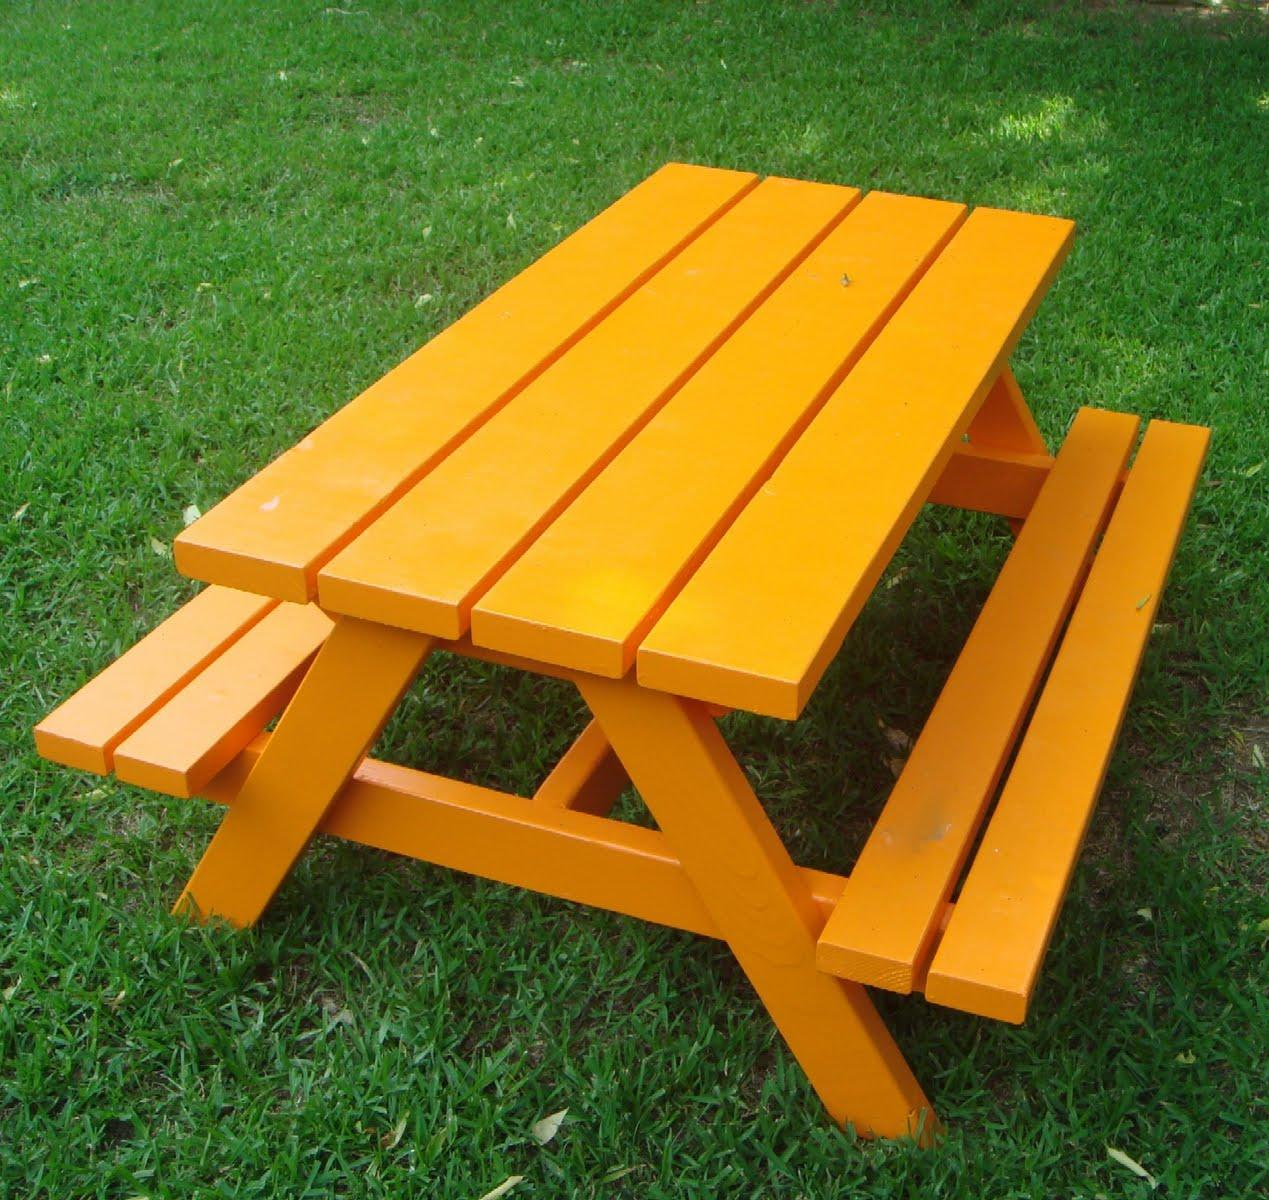 14. Build a Bigger Kid's Picnic Table